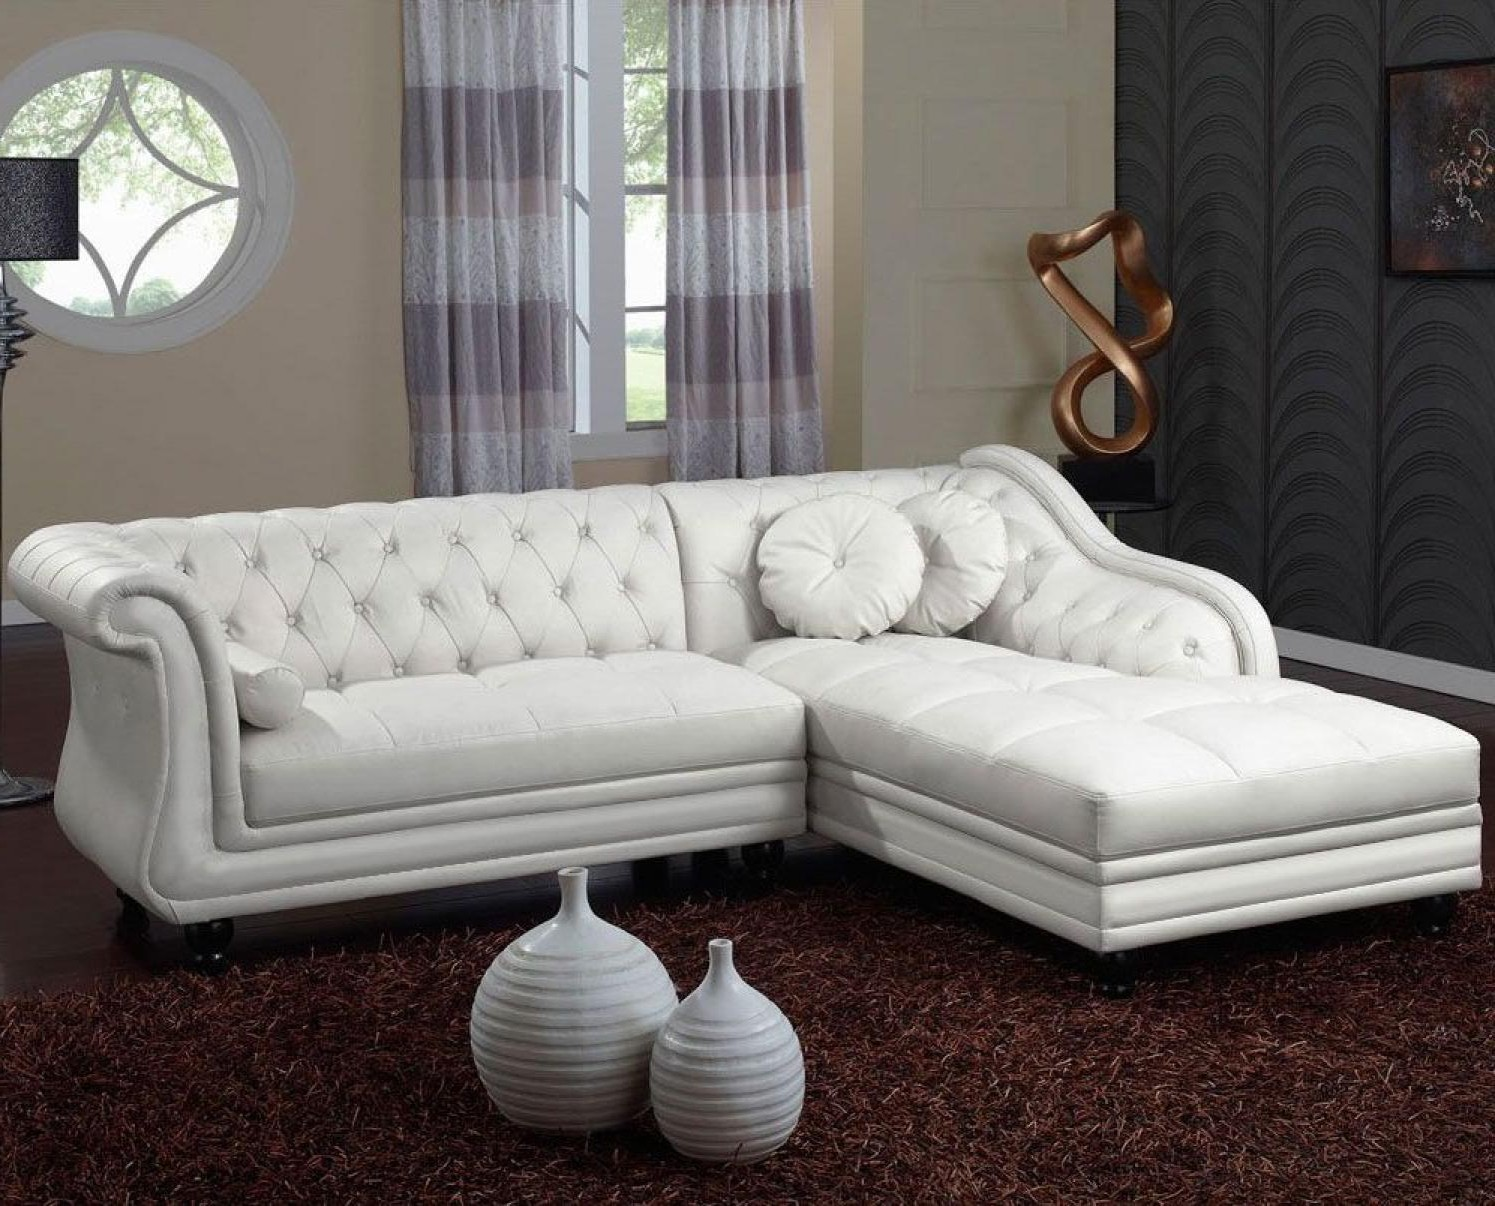 Canape dangle chesterfield cuir blanc canap id es de for Canape chesterfield cuir blanc